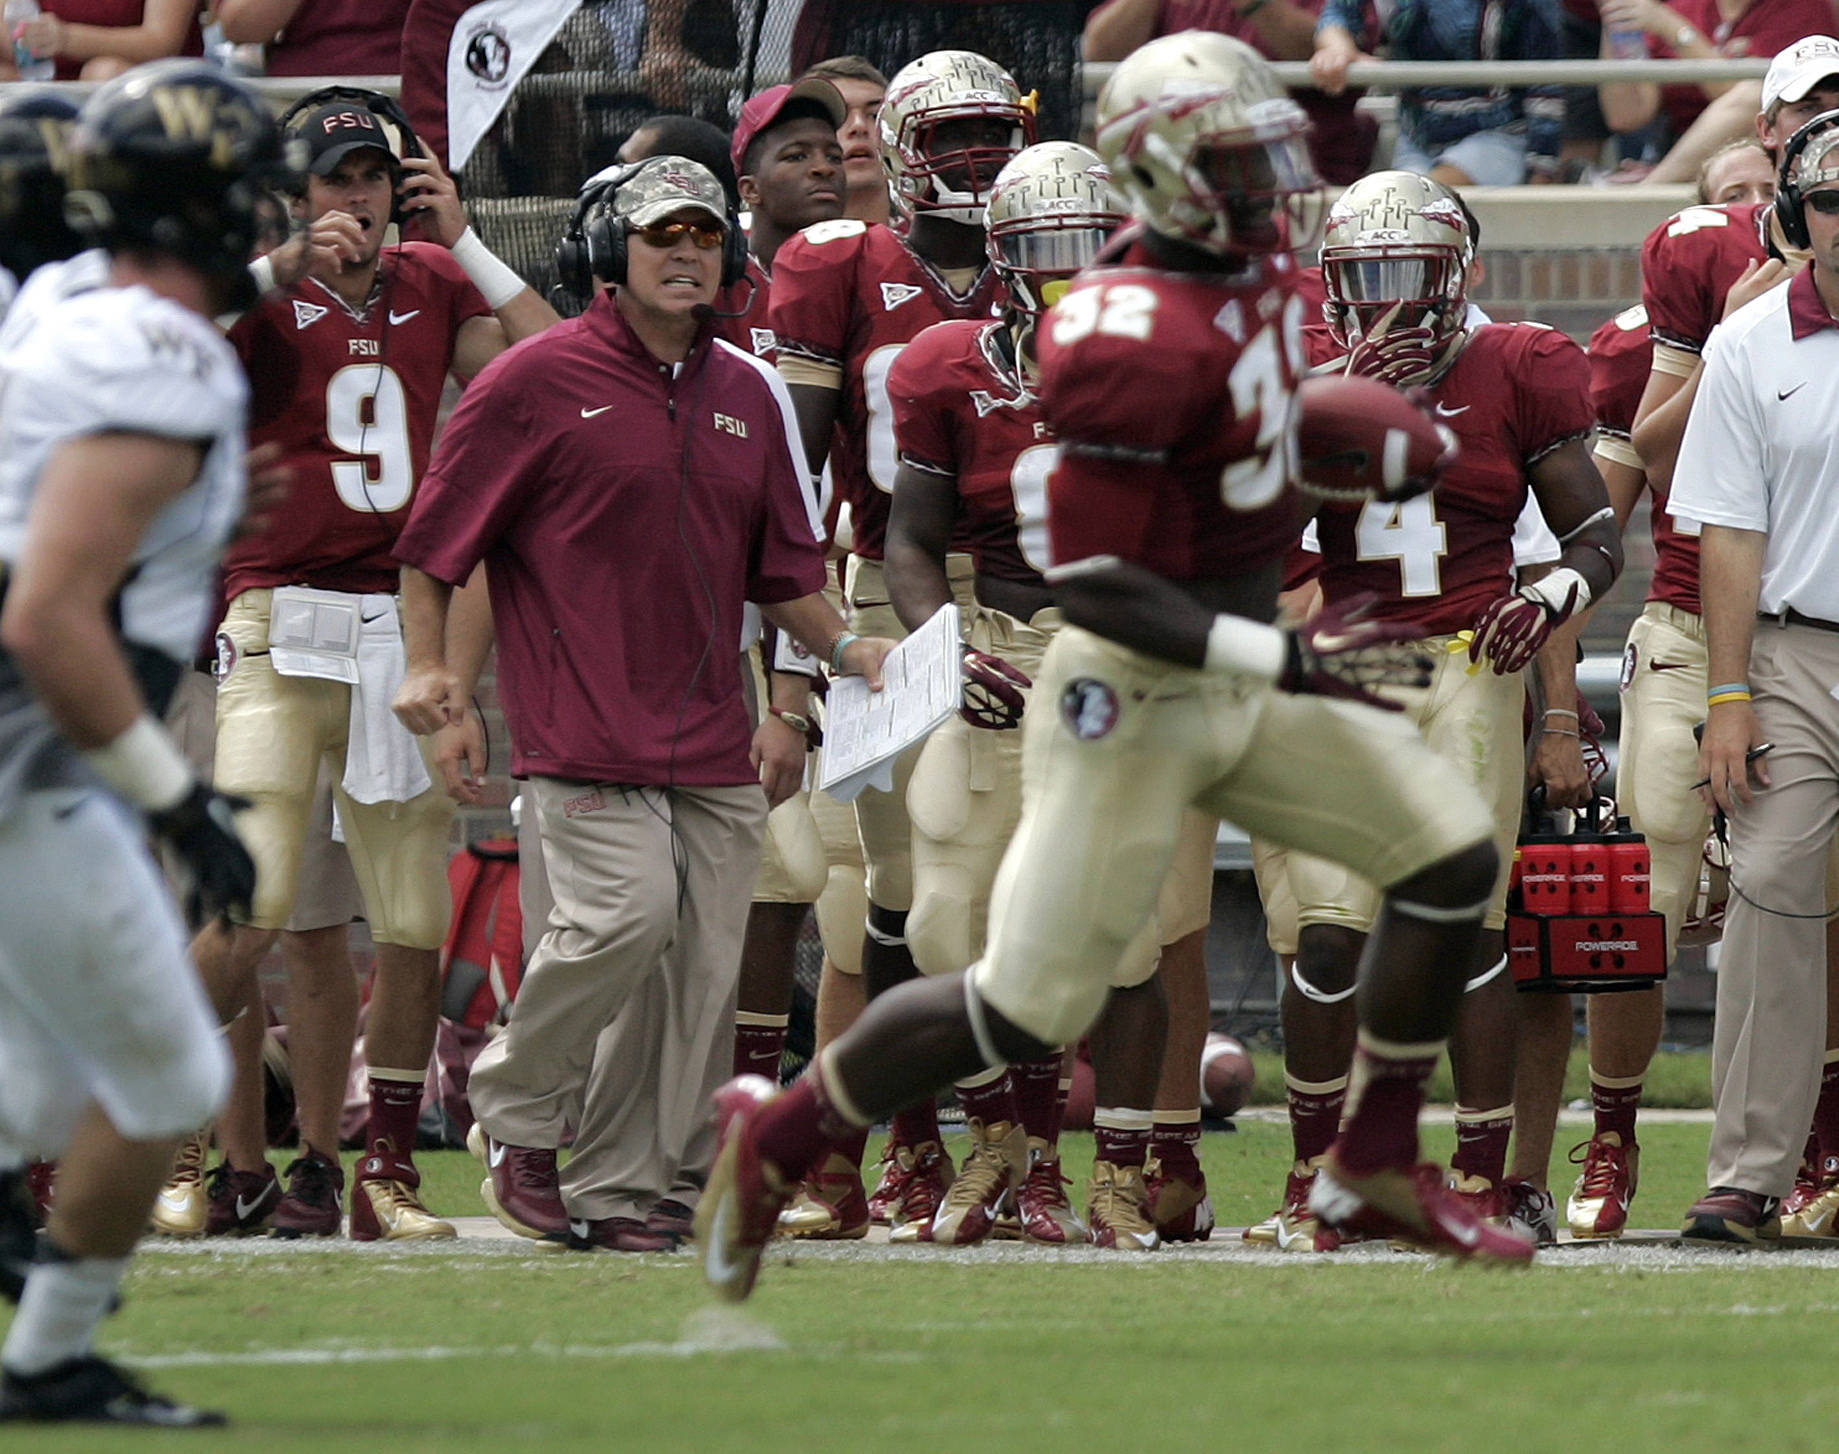 Florida State's head coach Jimbo Fisher, third from left, watches his running back James Wilder Jr. pickup a first downa. (AP Photo/Steve Cannon)